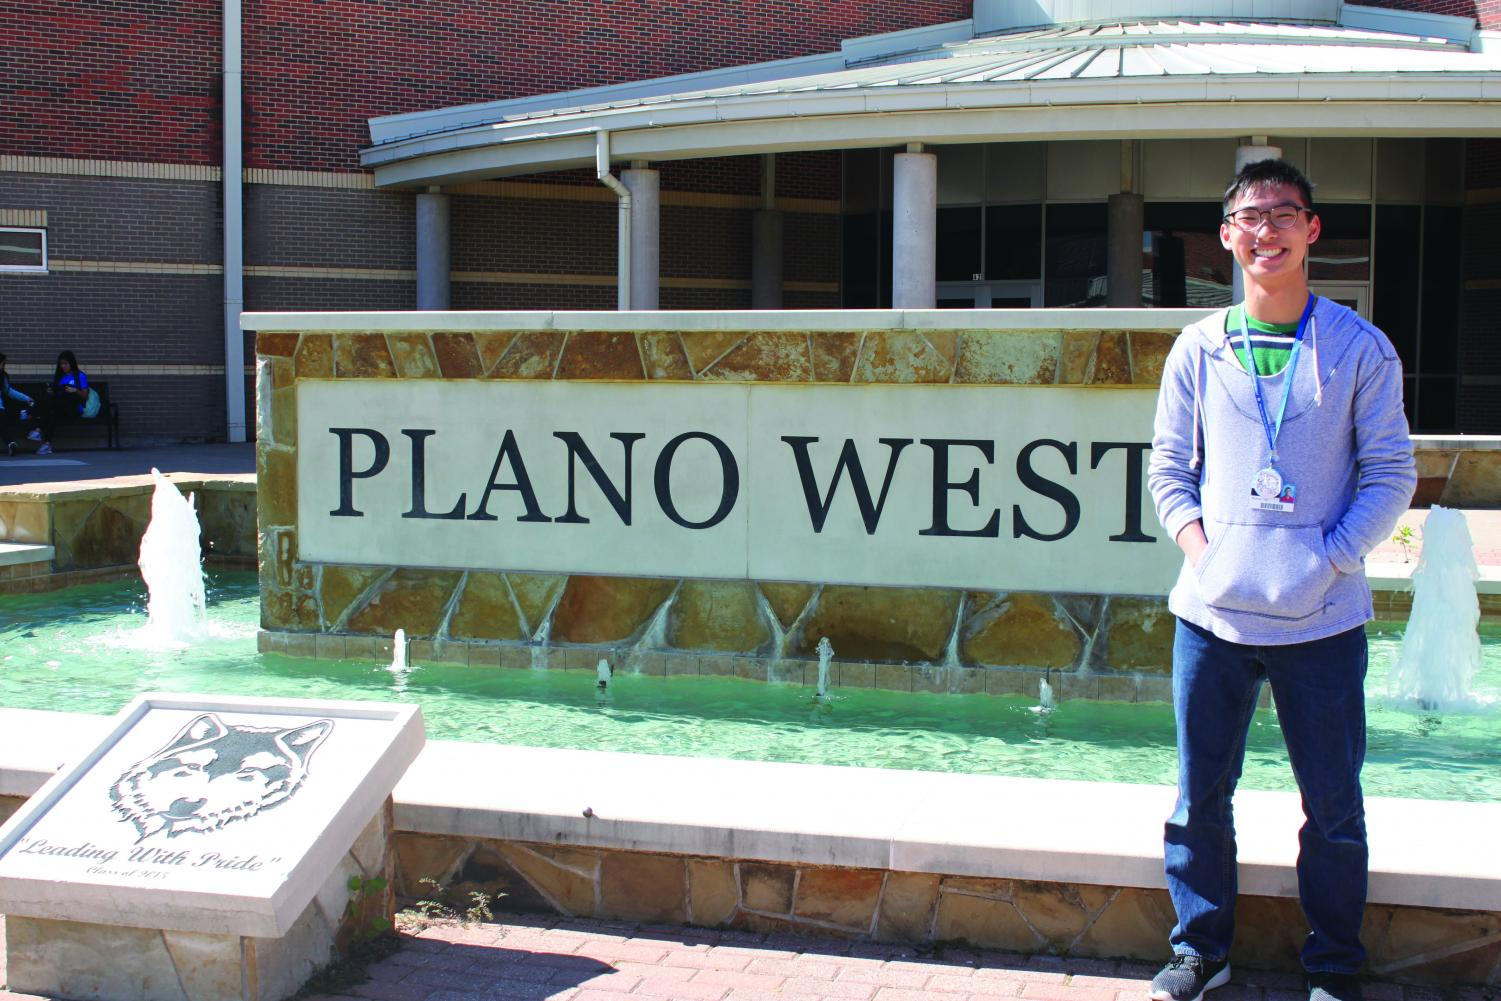 Newly elected Junior Class President (JCP) Michael Lam poses for a photo in front of the Plano West fountain.